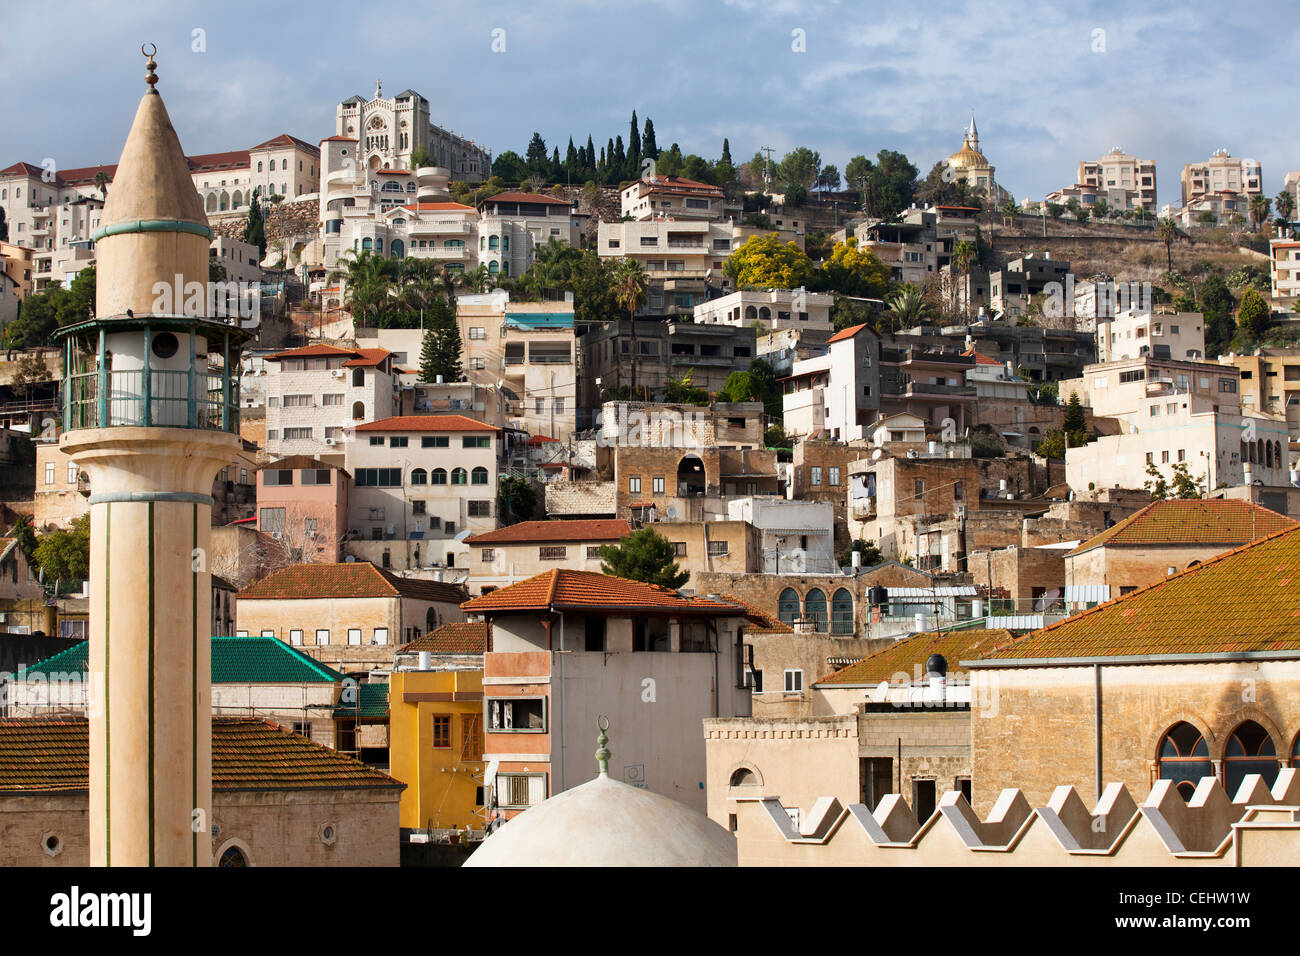 Roofs of the old city of Nazareth, Israel. Middle East - Stock Image